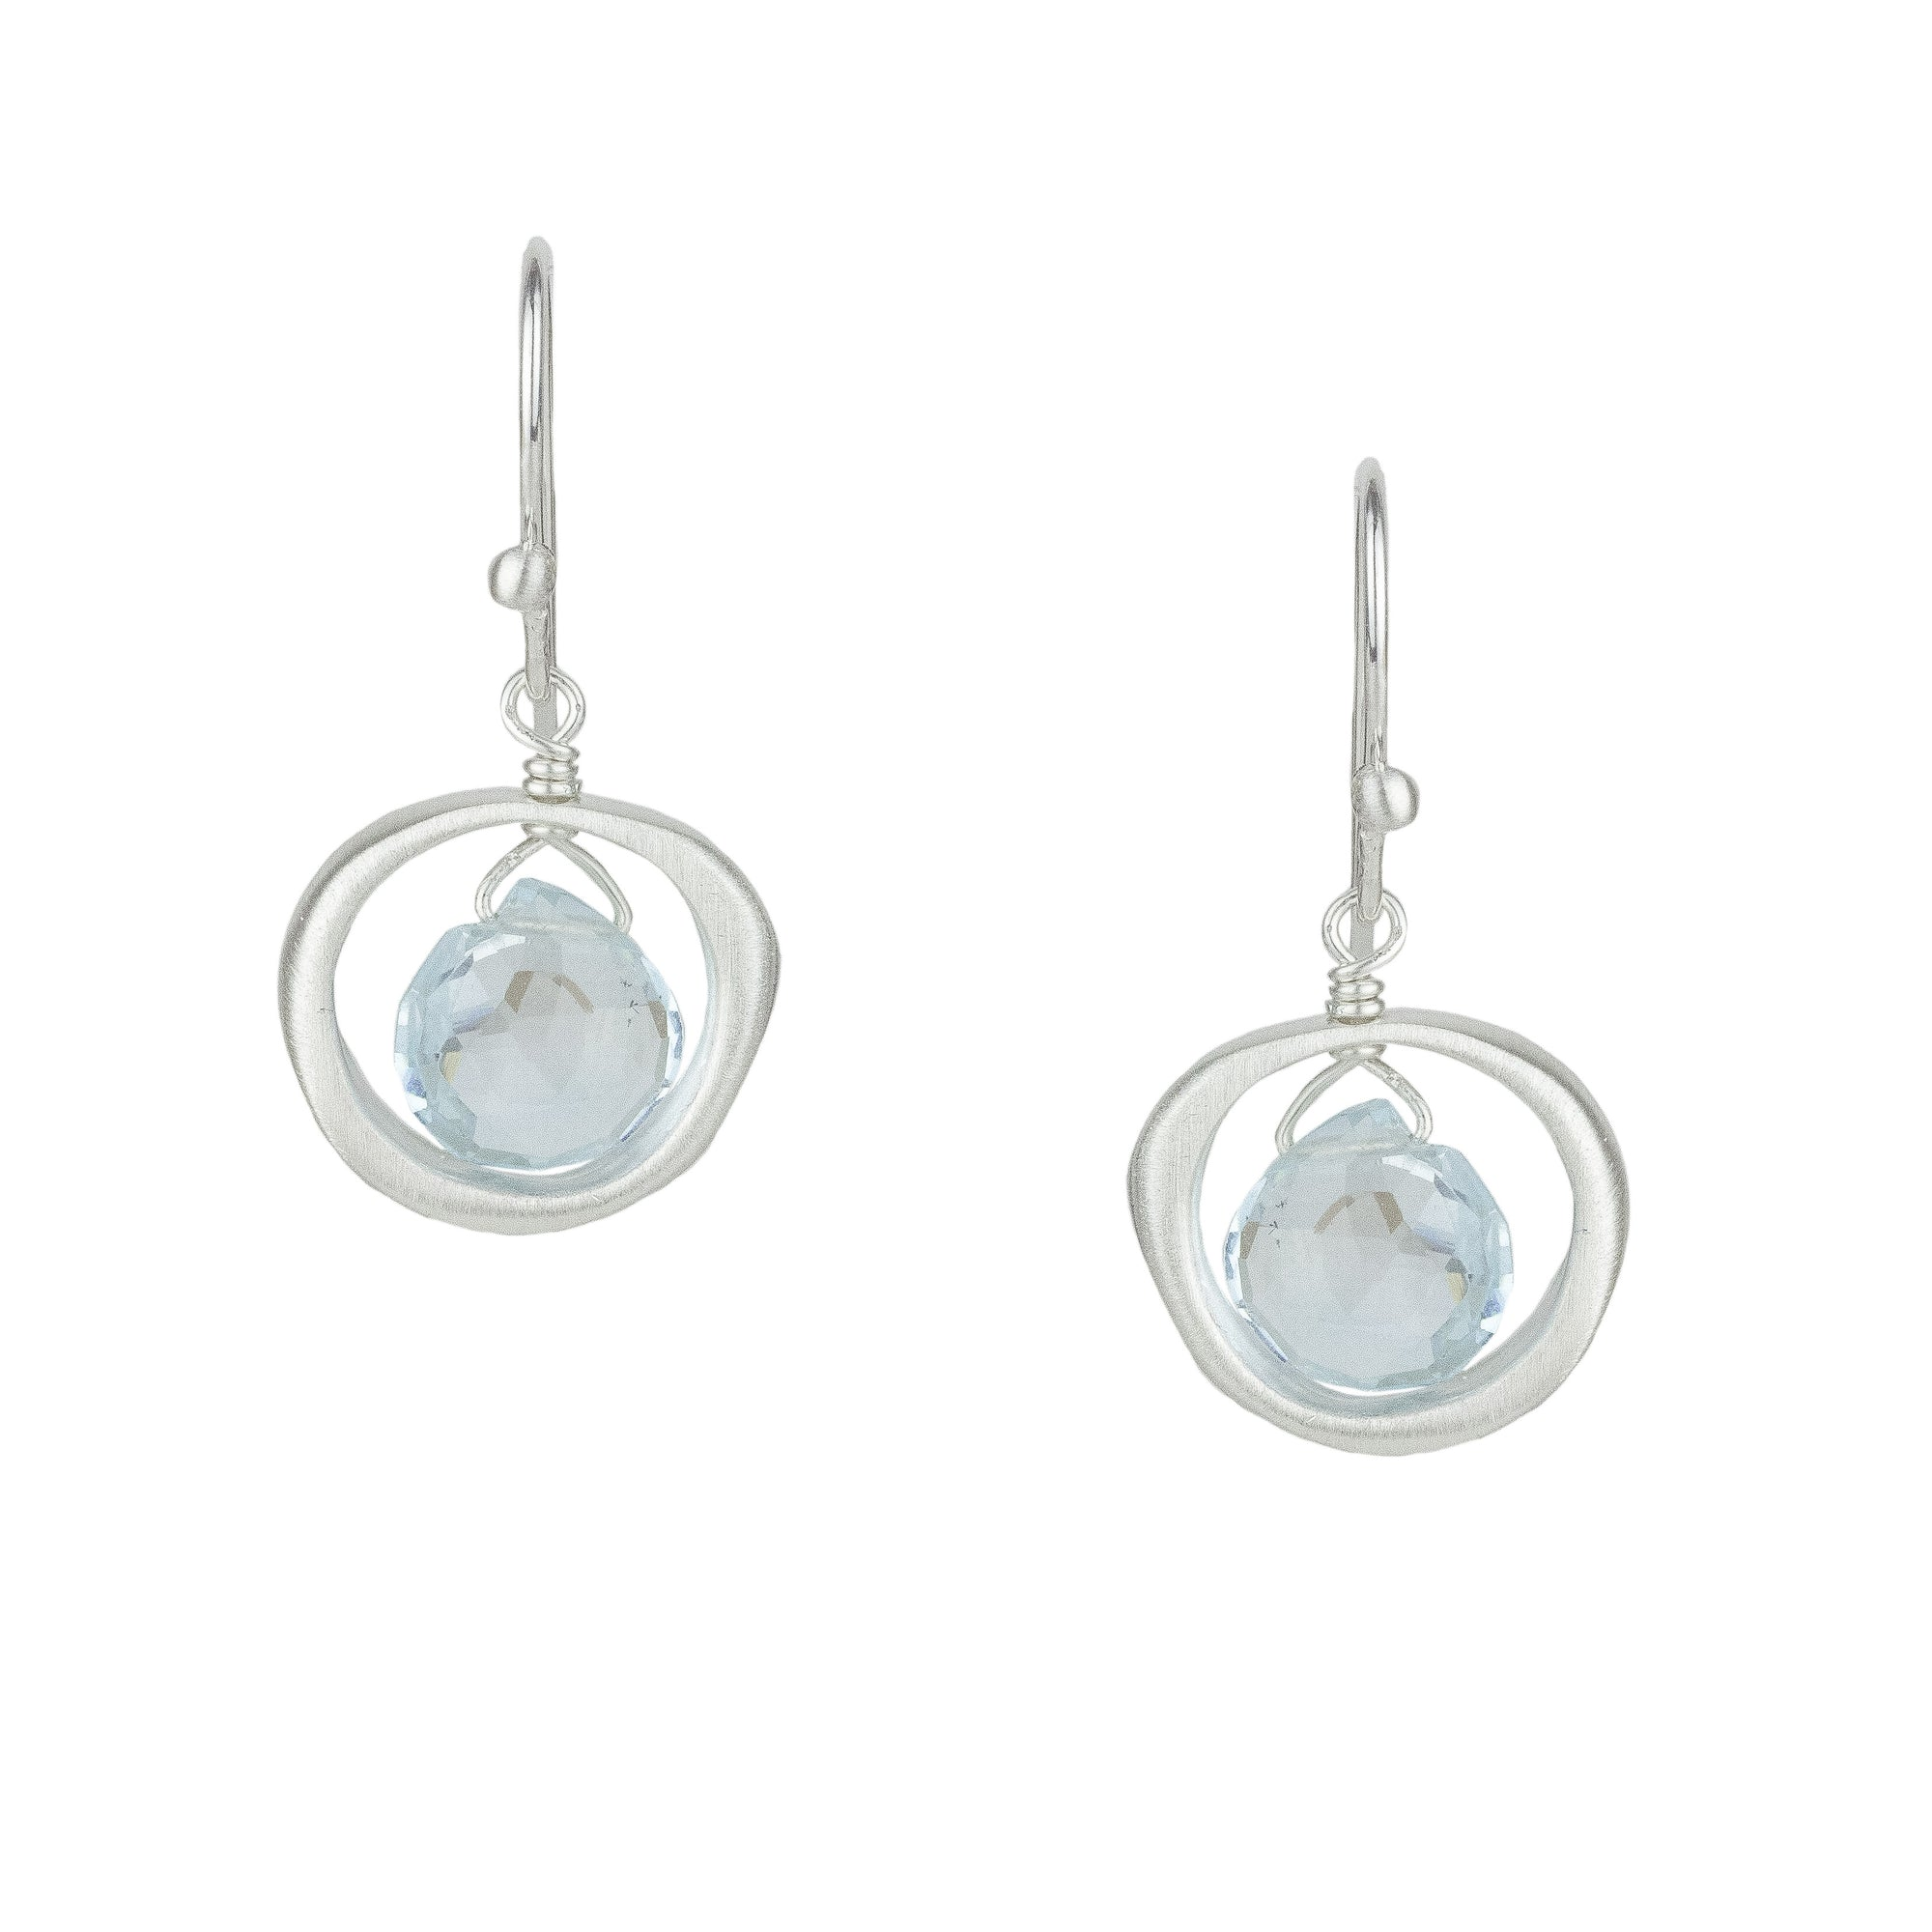 Organic Circle Earrings w Blue Topaz